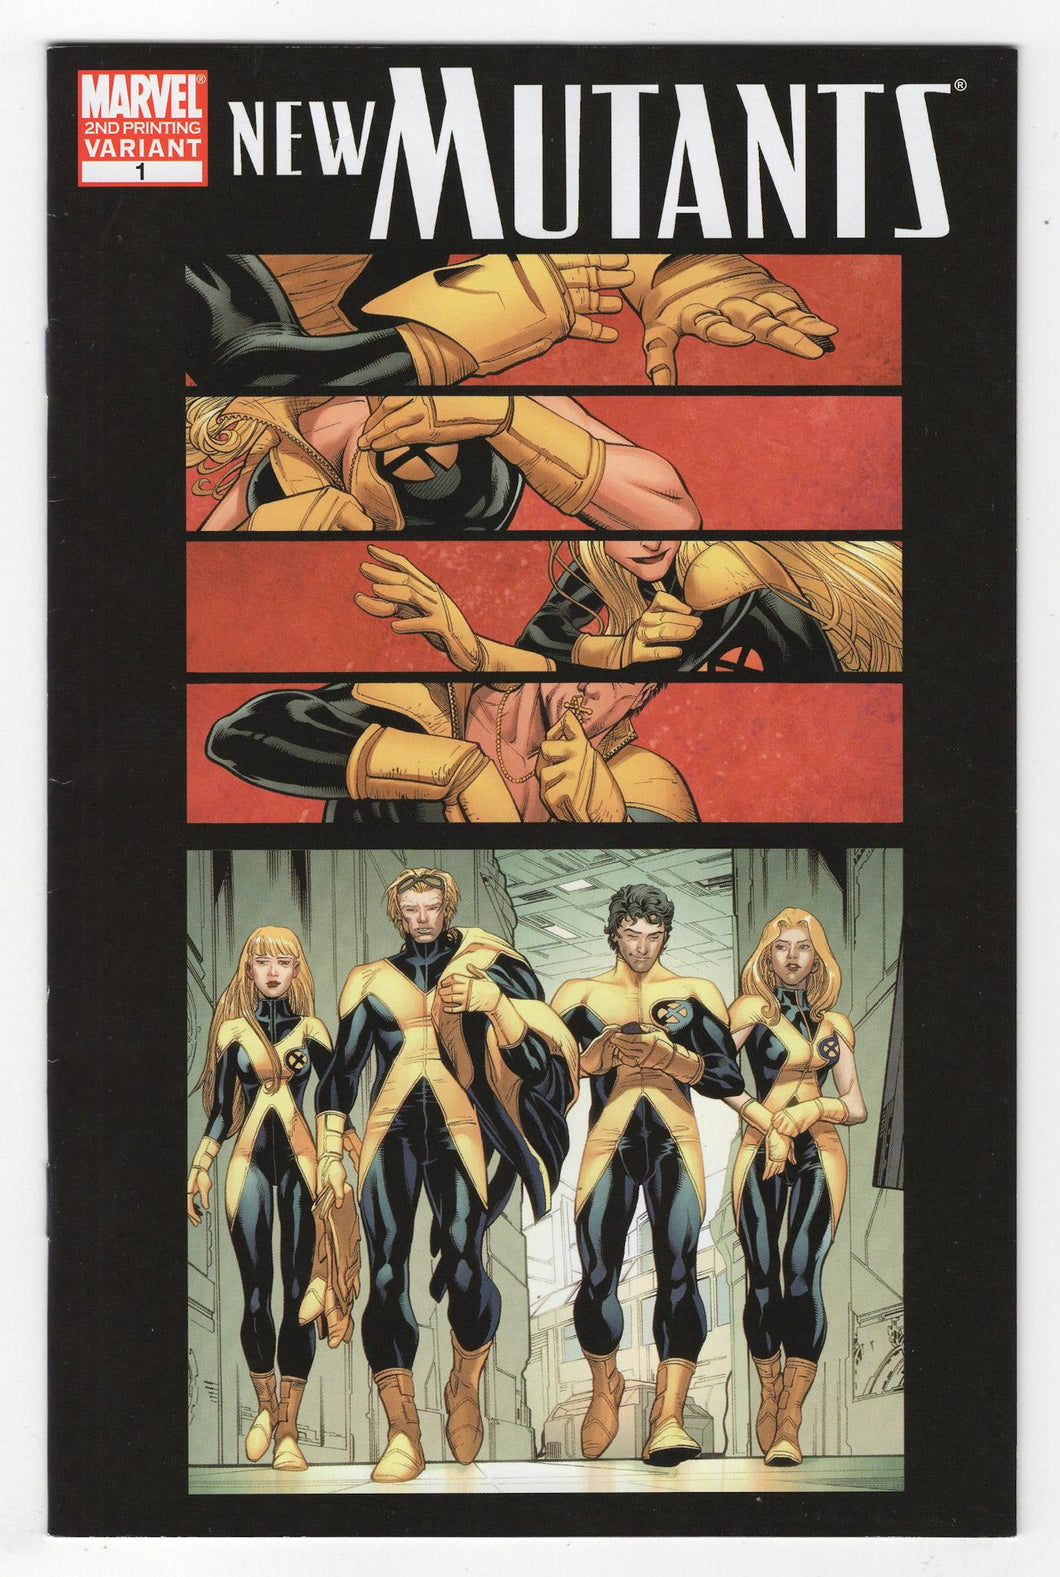 New Mutants #1 2nd Print Variant Cover Front